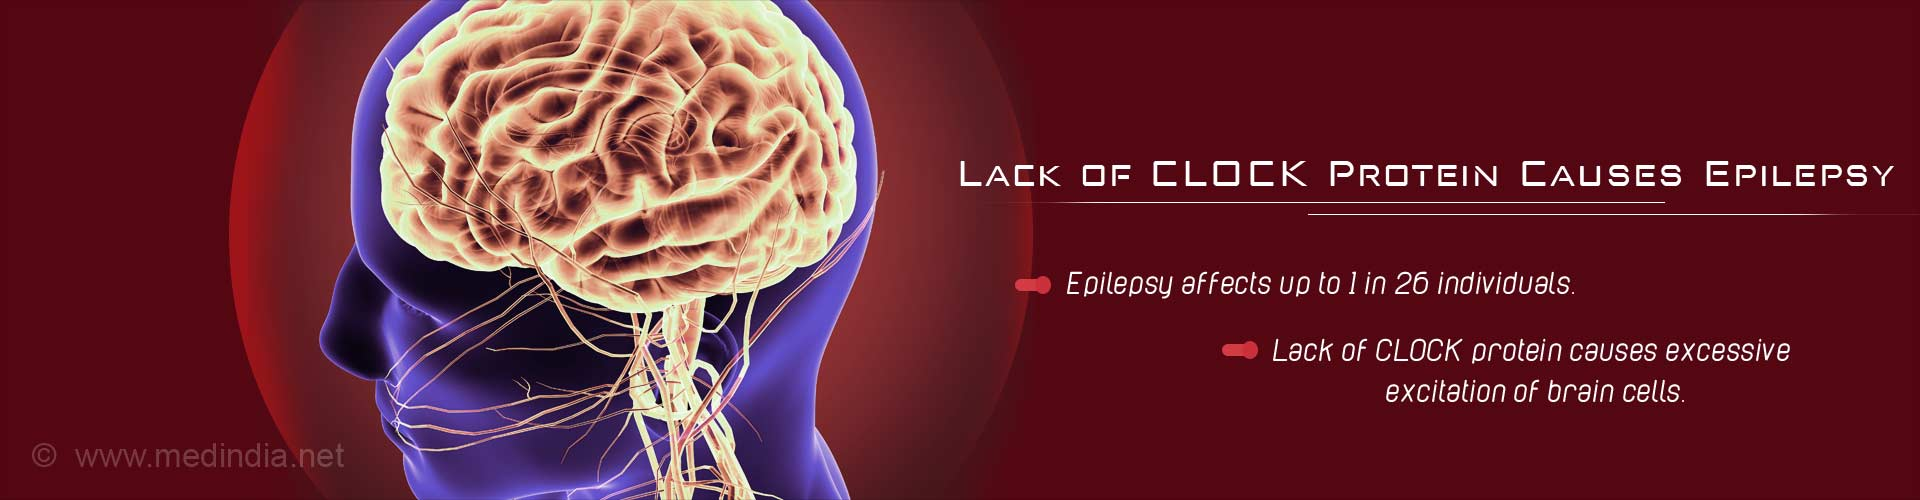 Epilepsy may be Caused by Lack of the Protein CLOCK